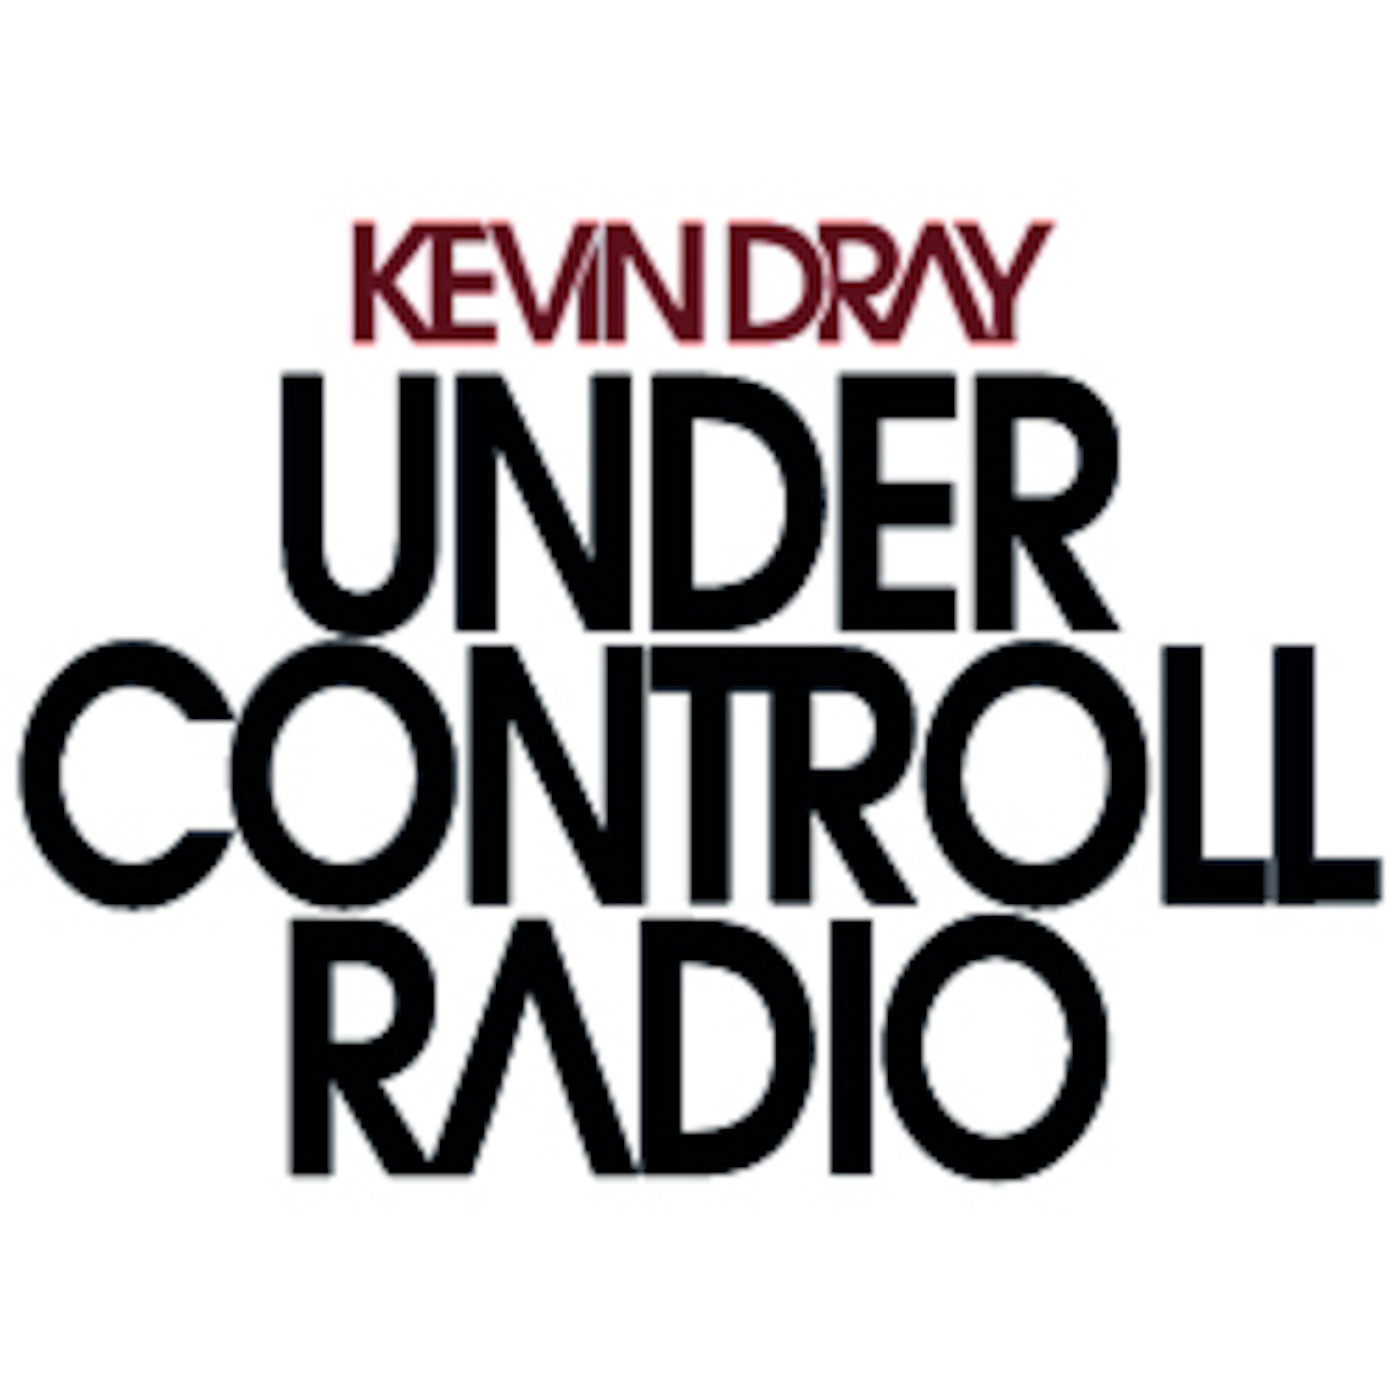 Kevin Dray - Under Controll Radio